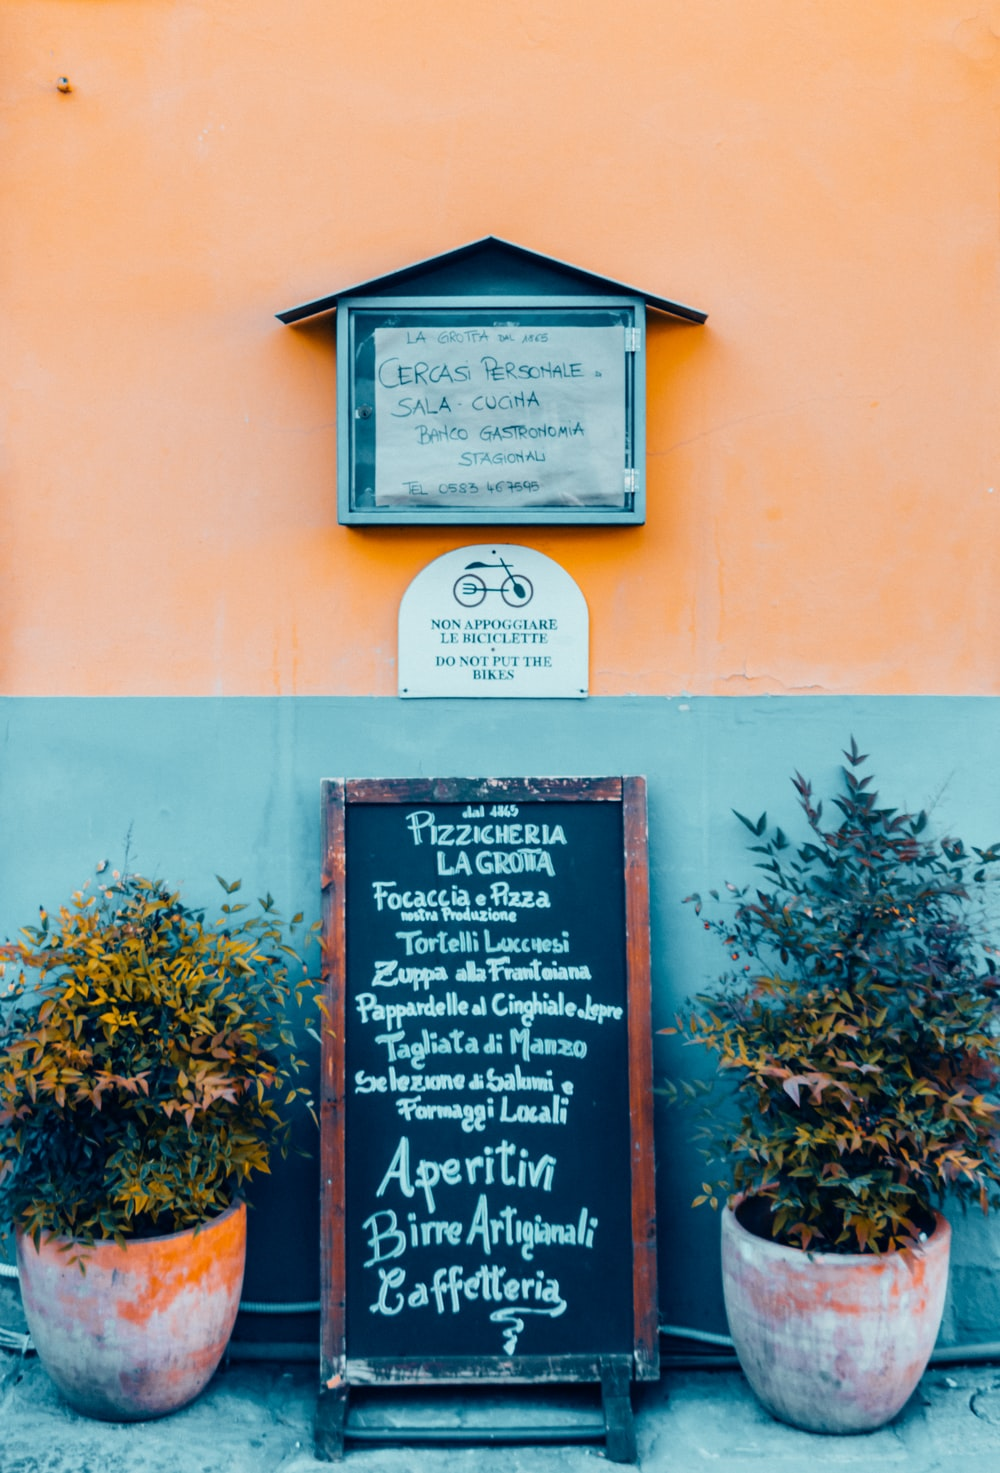 Pizzicheria menu